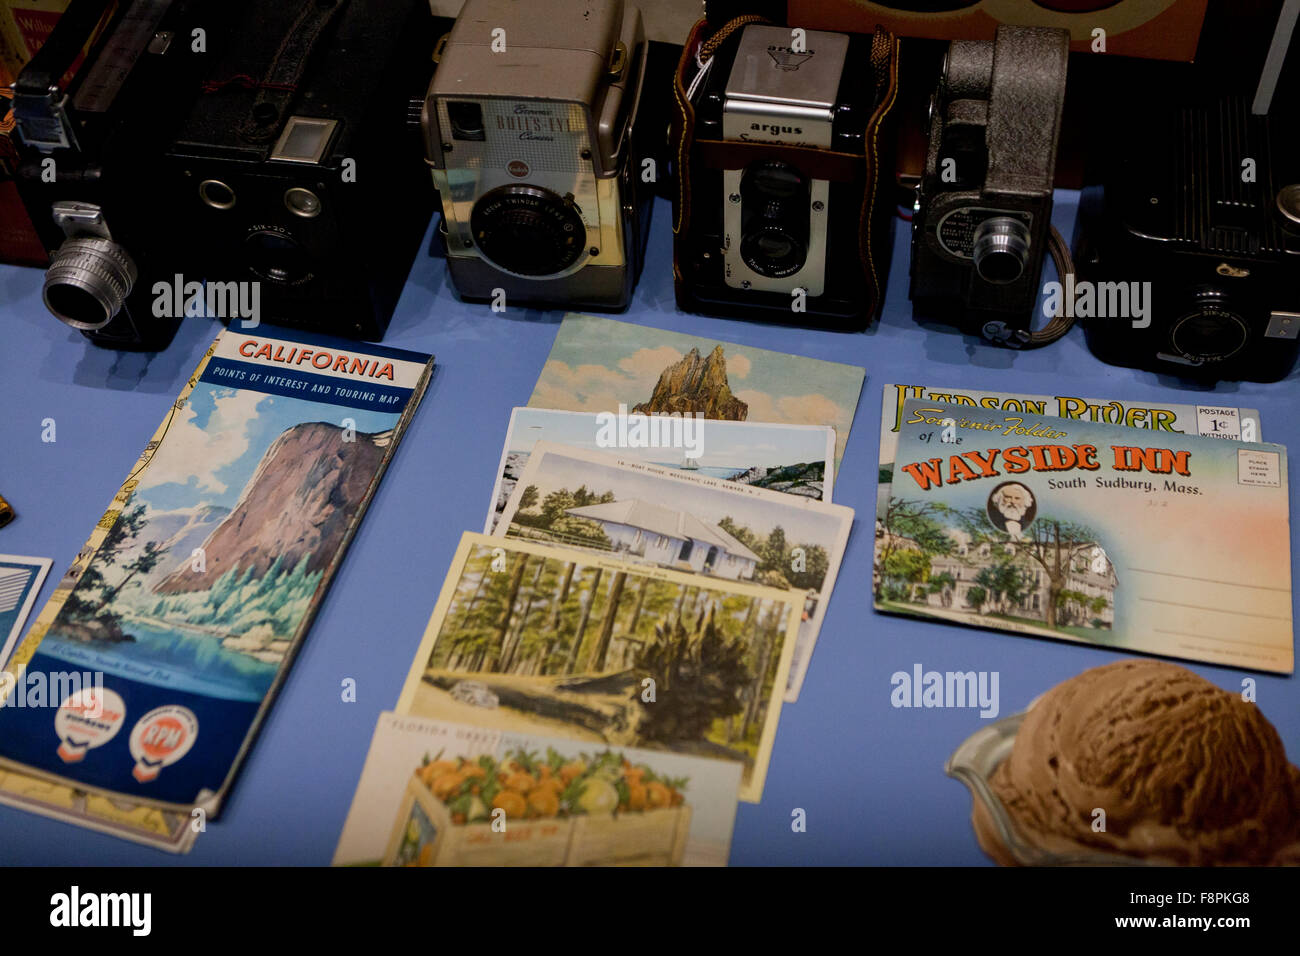 Vintage cameras and postcards - USA - Stock Image